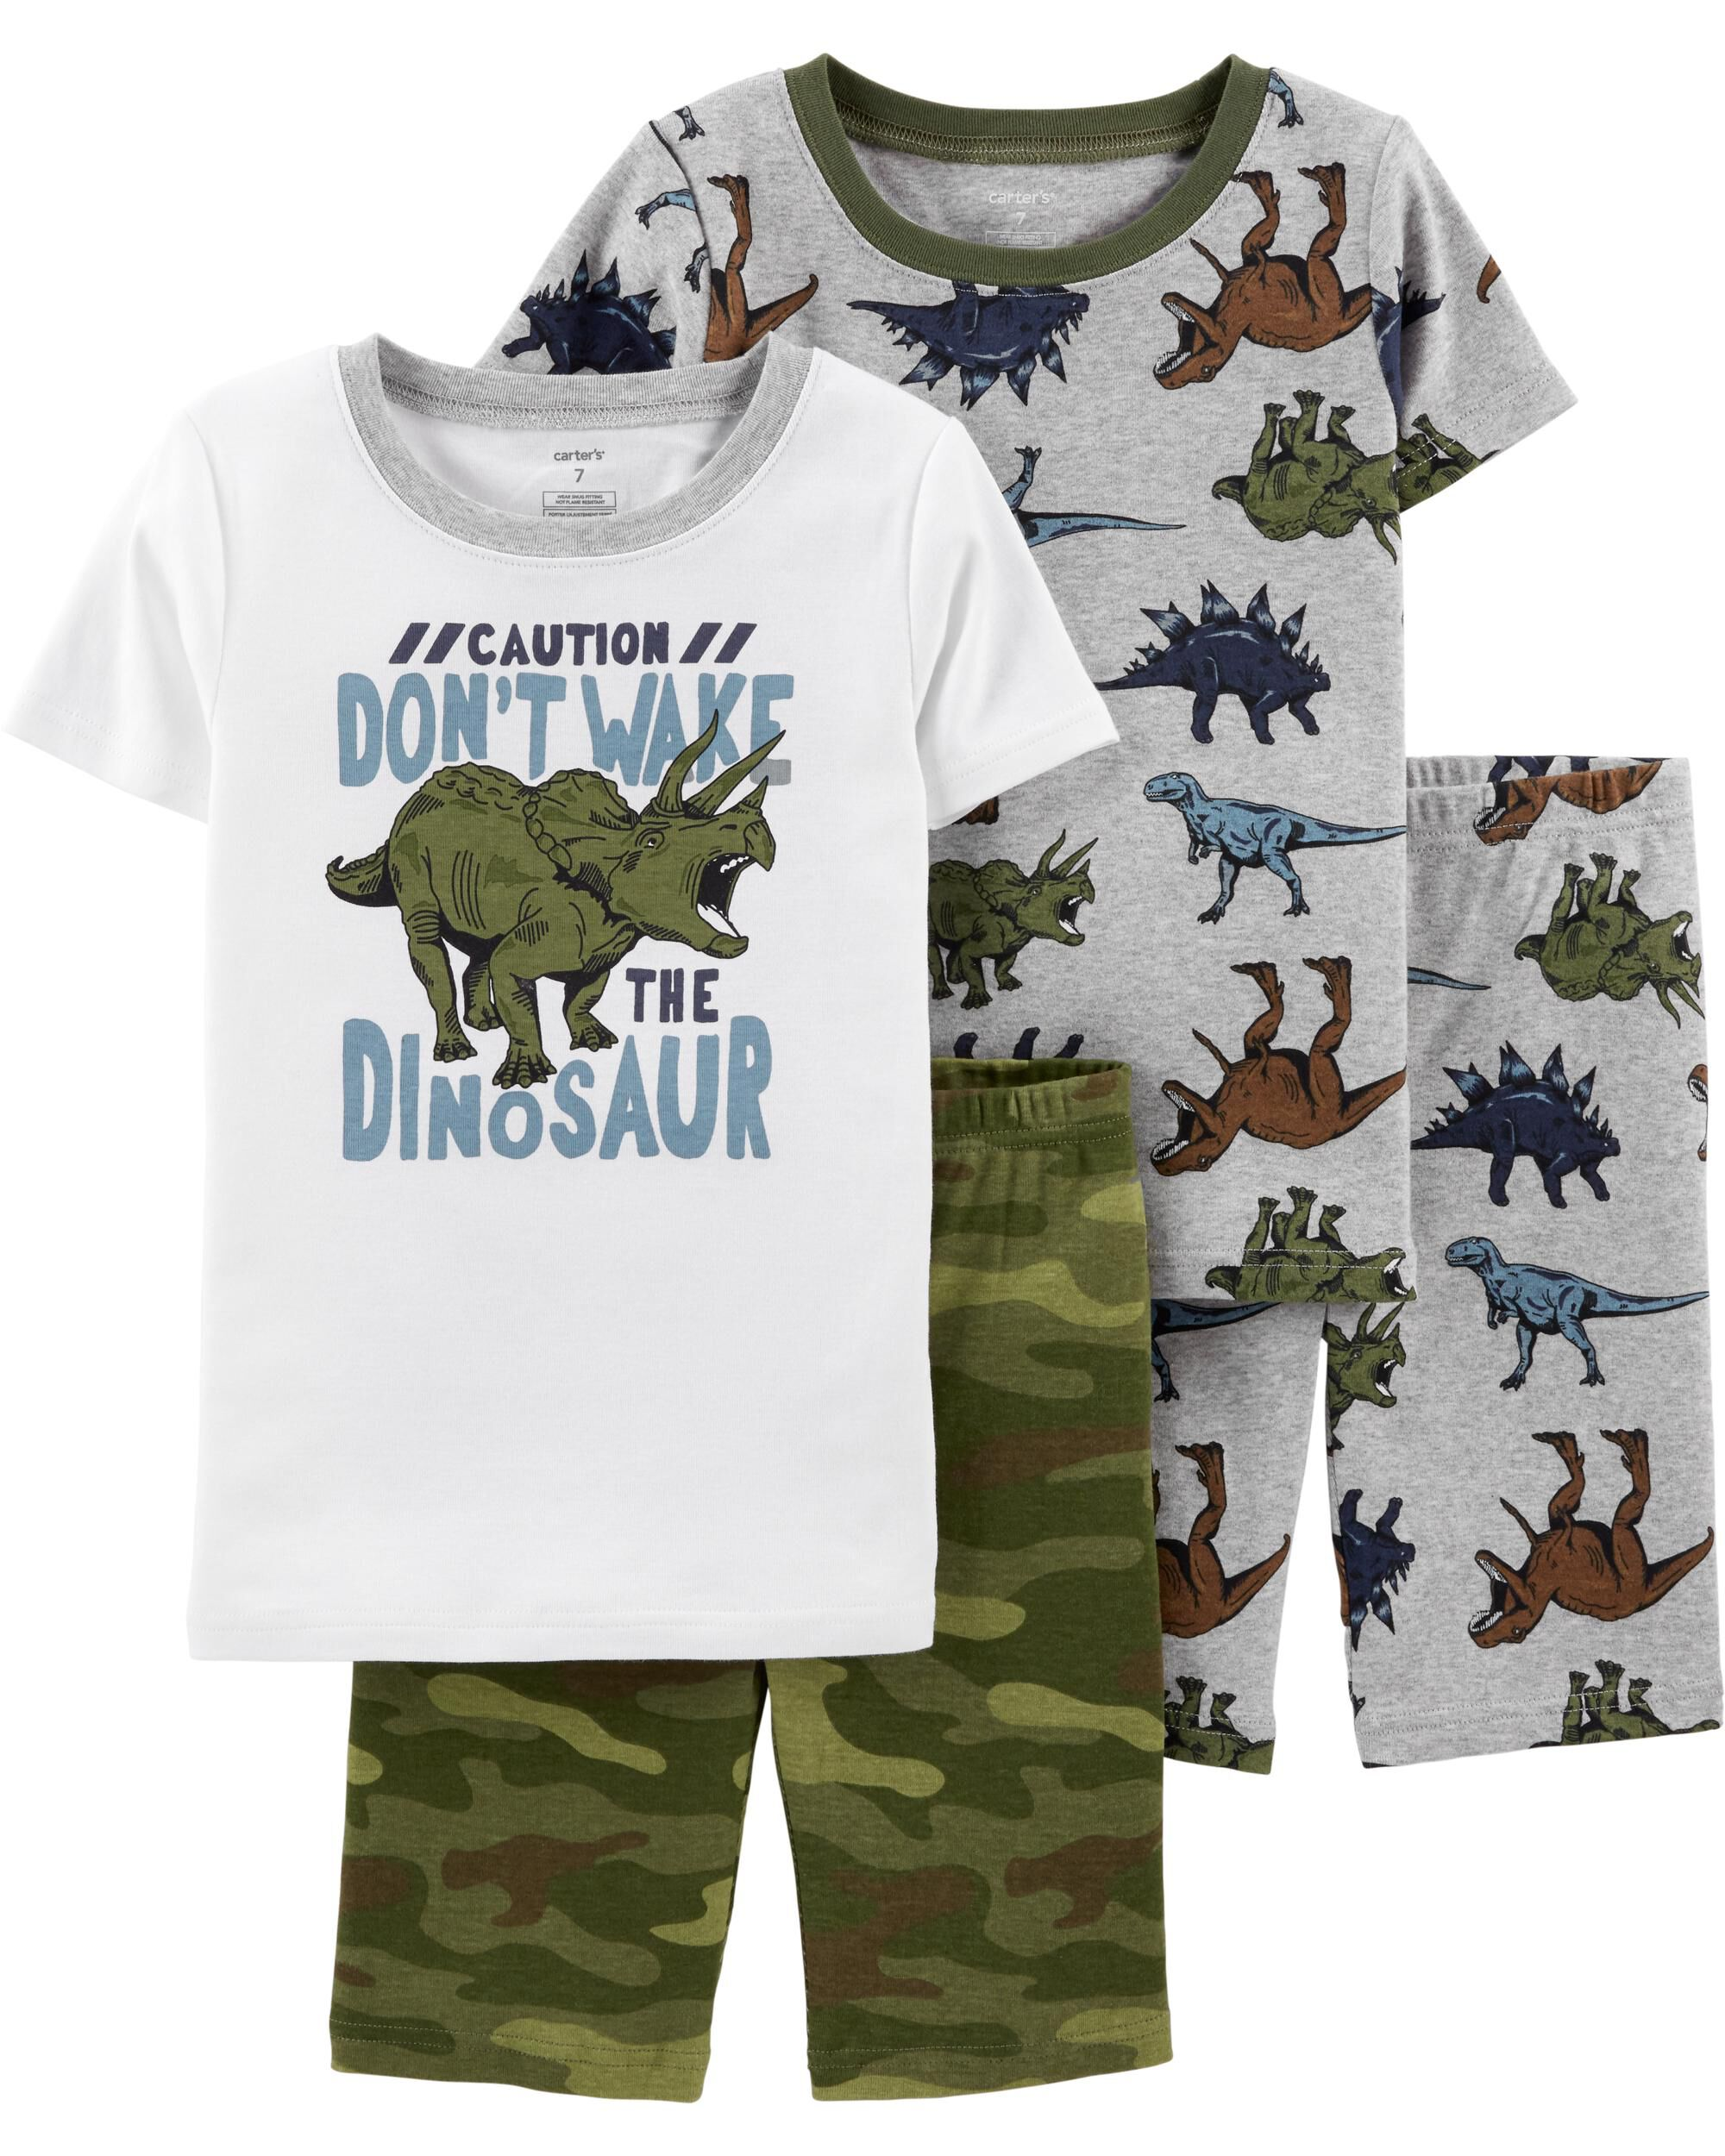 Boys' Clothing Mother & Kids 1-5t Kids Baby Boys Clothing Shark Animals Cartoon Top Camo Hooded Sweatshirt Camouflage Cute Hoodies Outfits